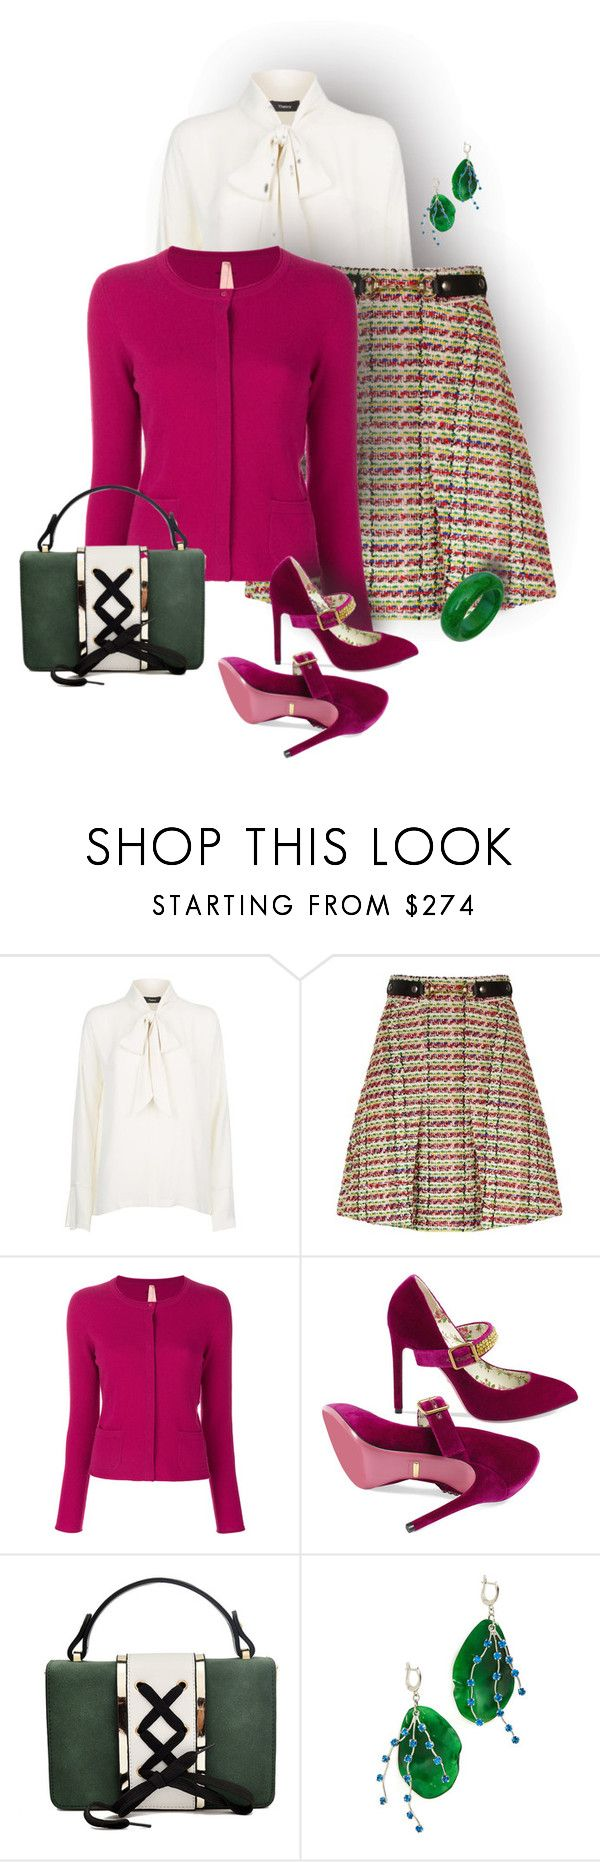 """""""Cardigan"""" by ana-kreb ❤ liked on Polyvore featuring Gucci, MARC CAIN and Marni"""